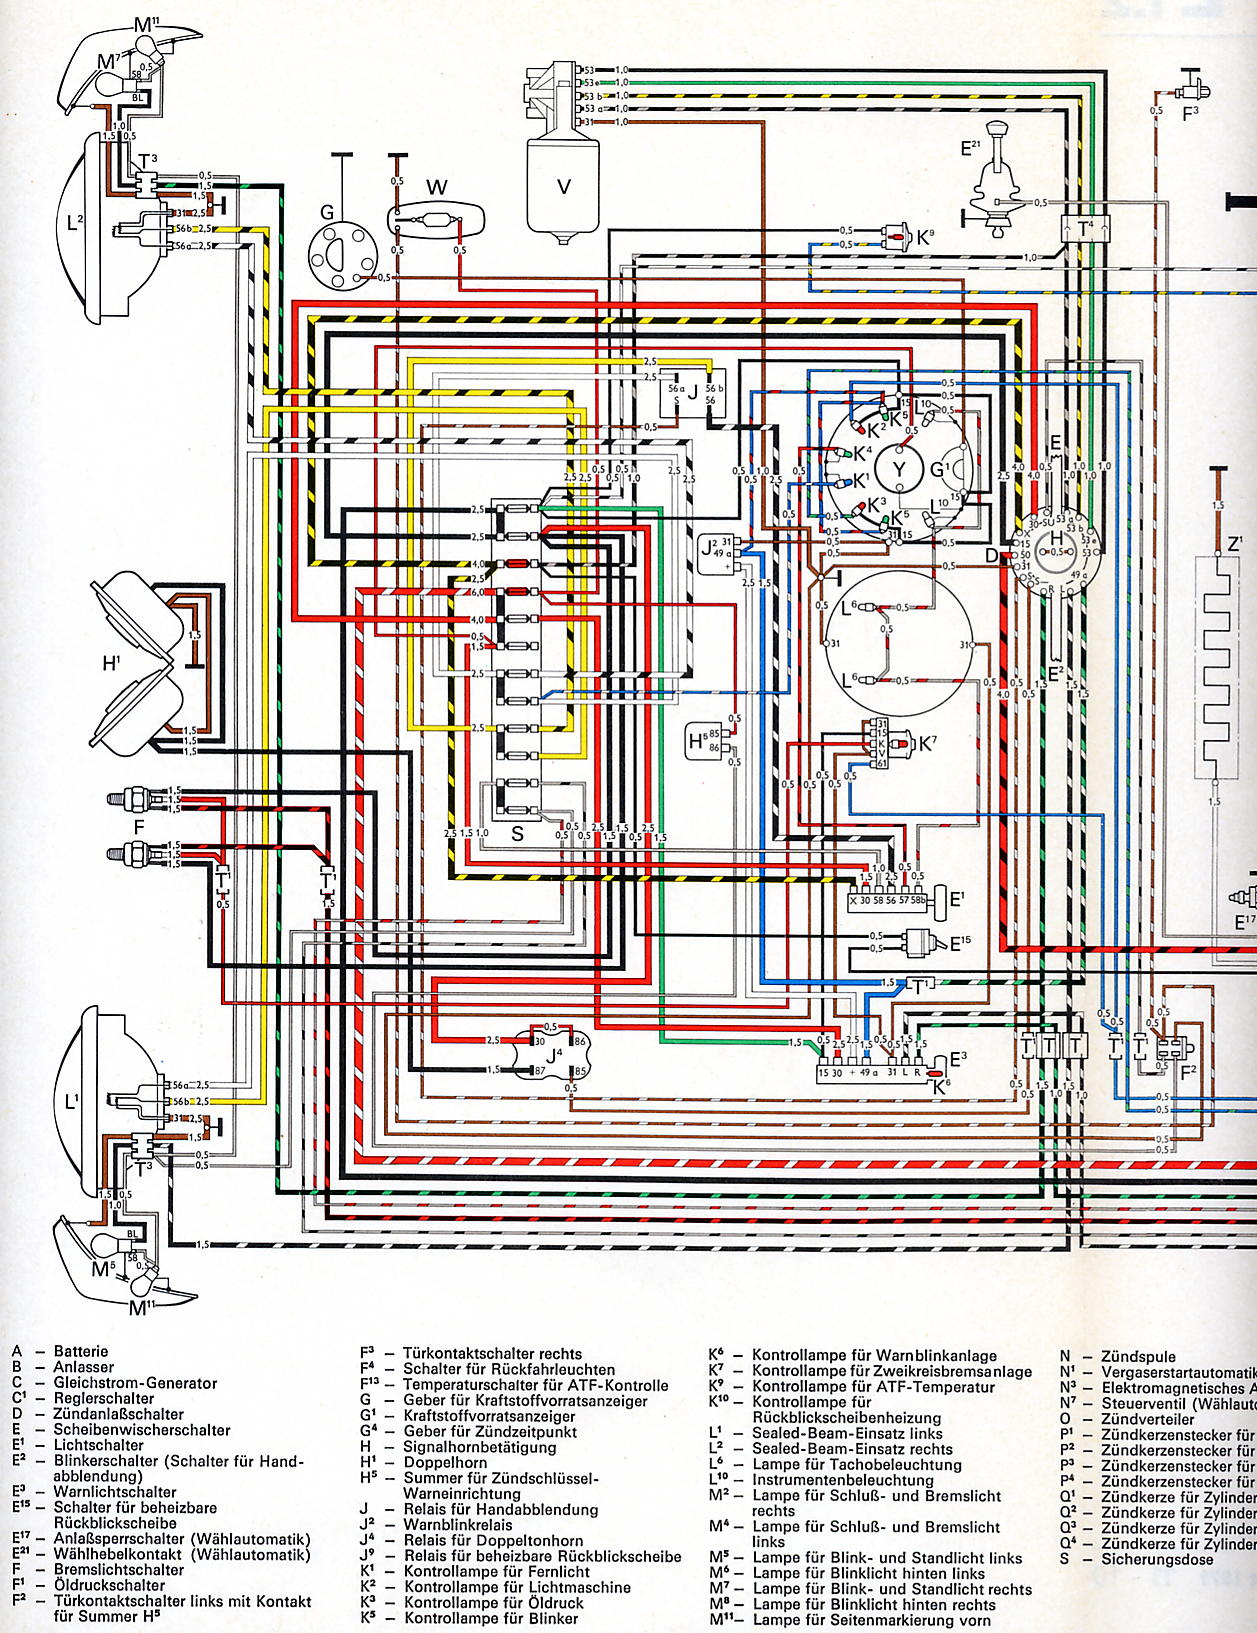 Karmann_Ghia_USA_from_August_1971 1 wiring diagram shoptalkforums com vw mk1 wiring diagram at creativeand.co